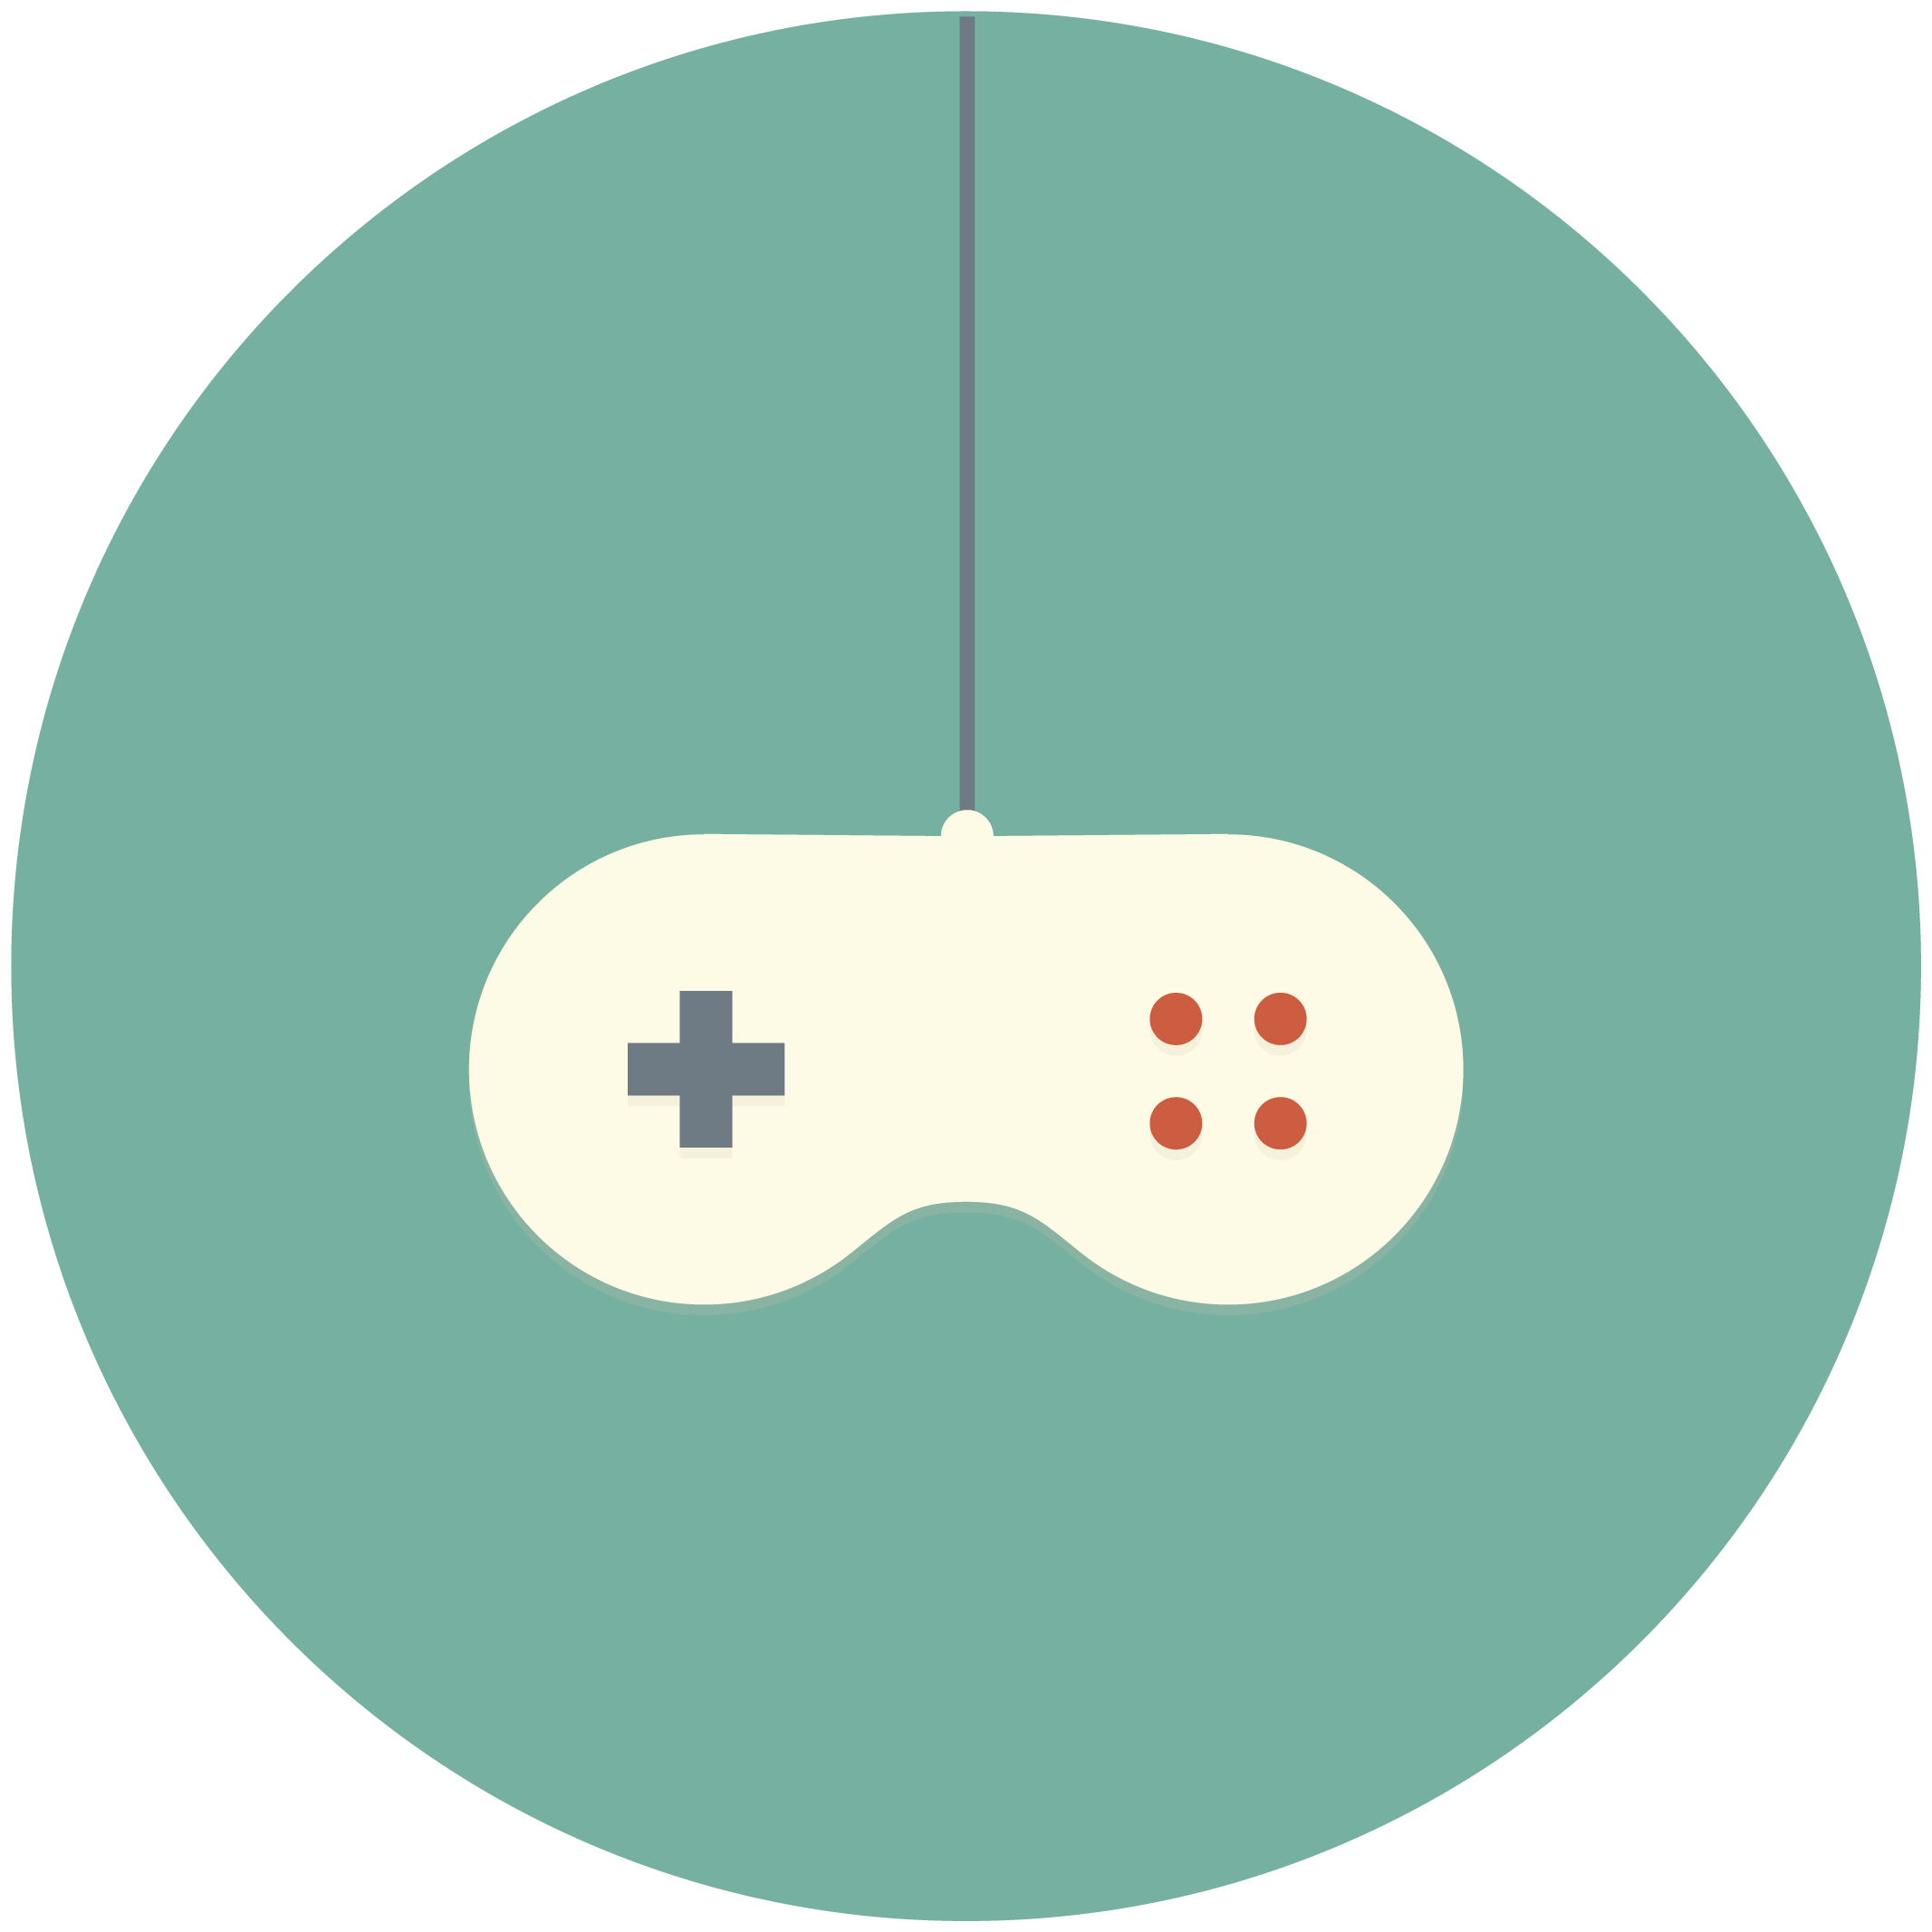 play game button png